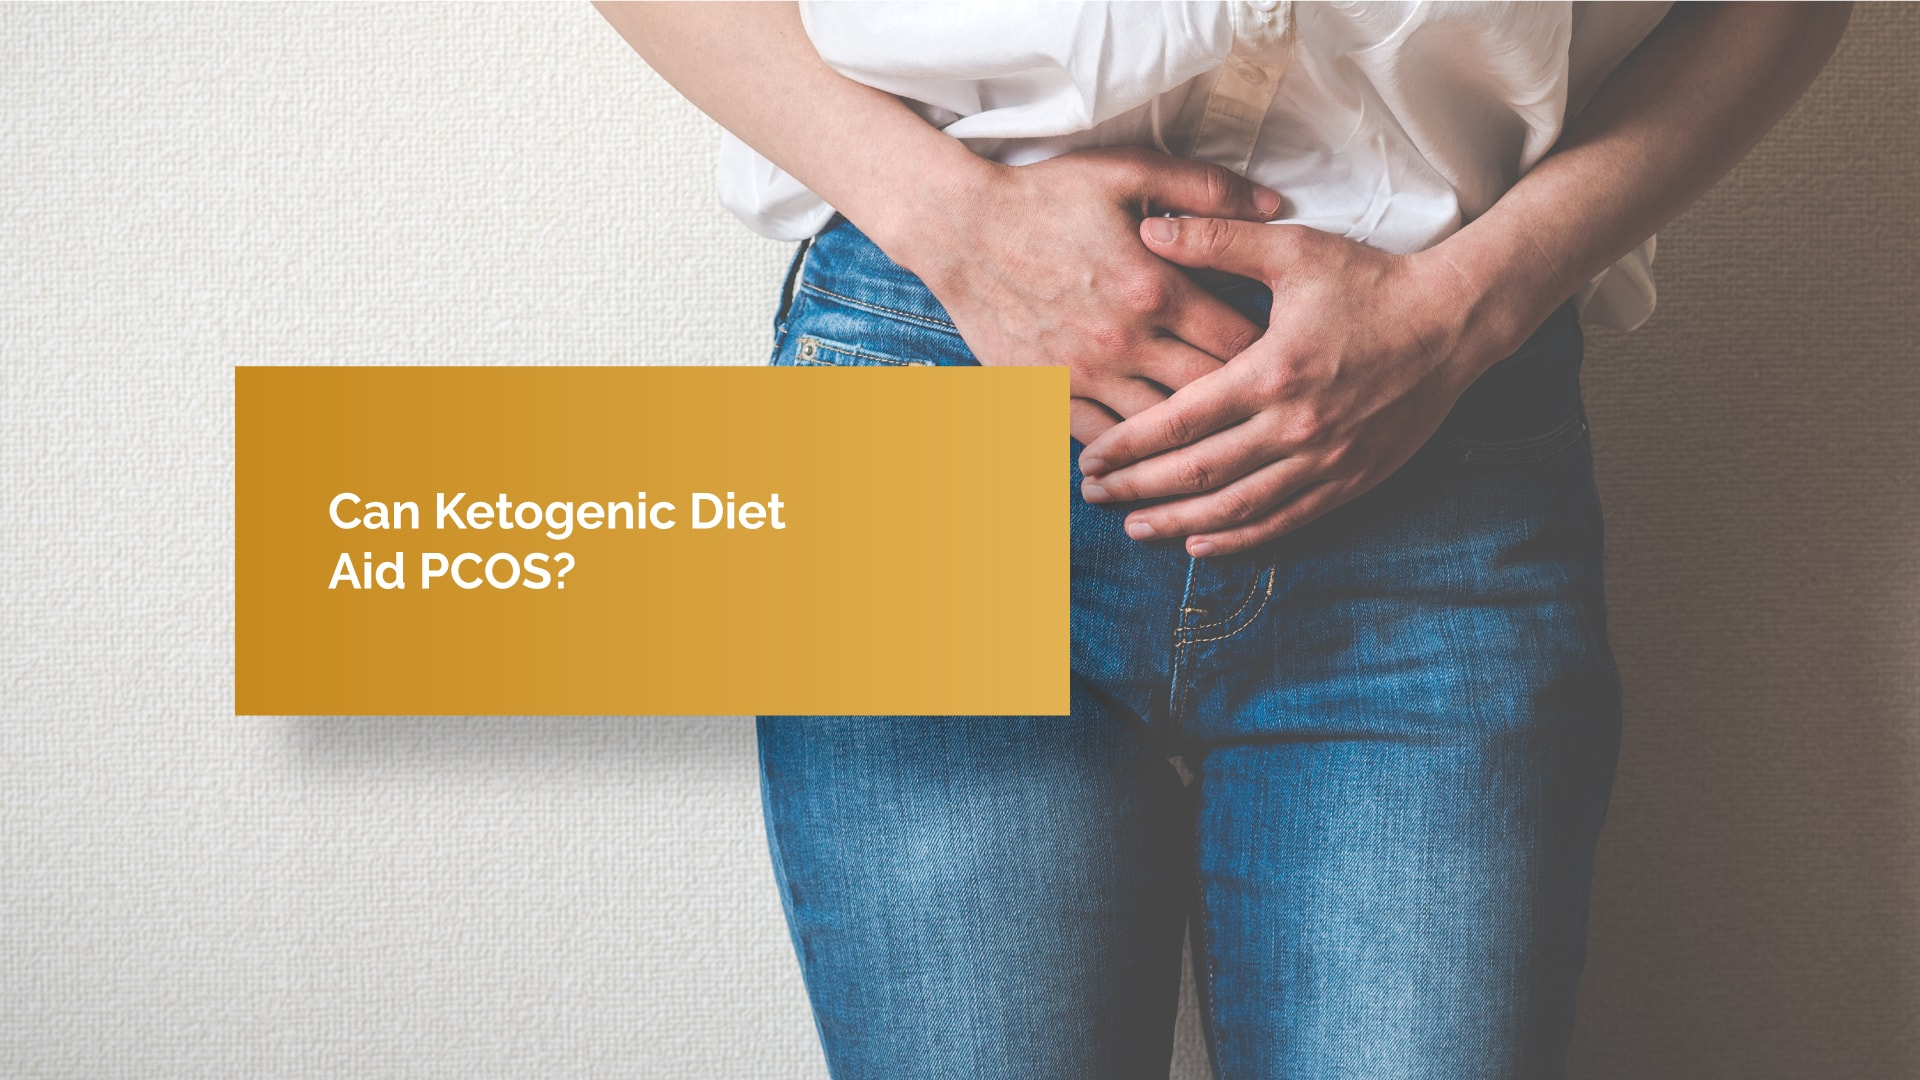 Keto diet and pcos